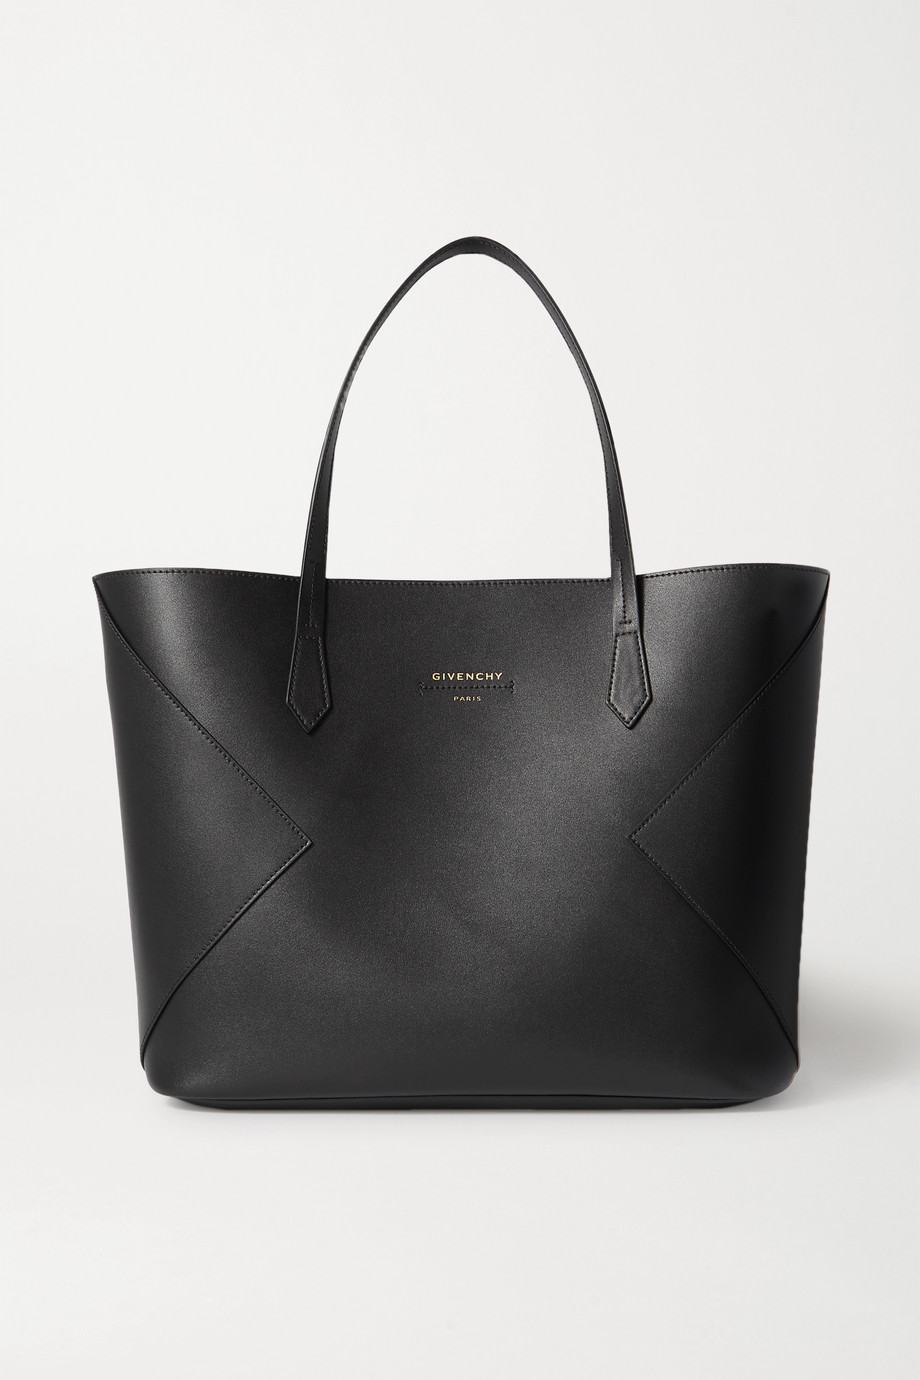 Givenchy Wing paneled leather tote